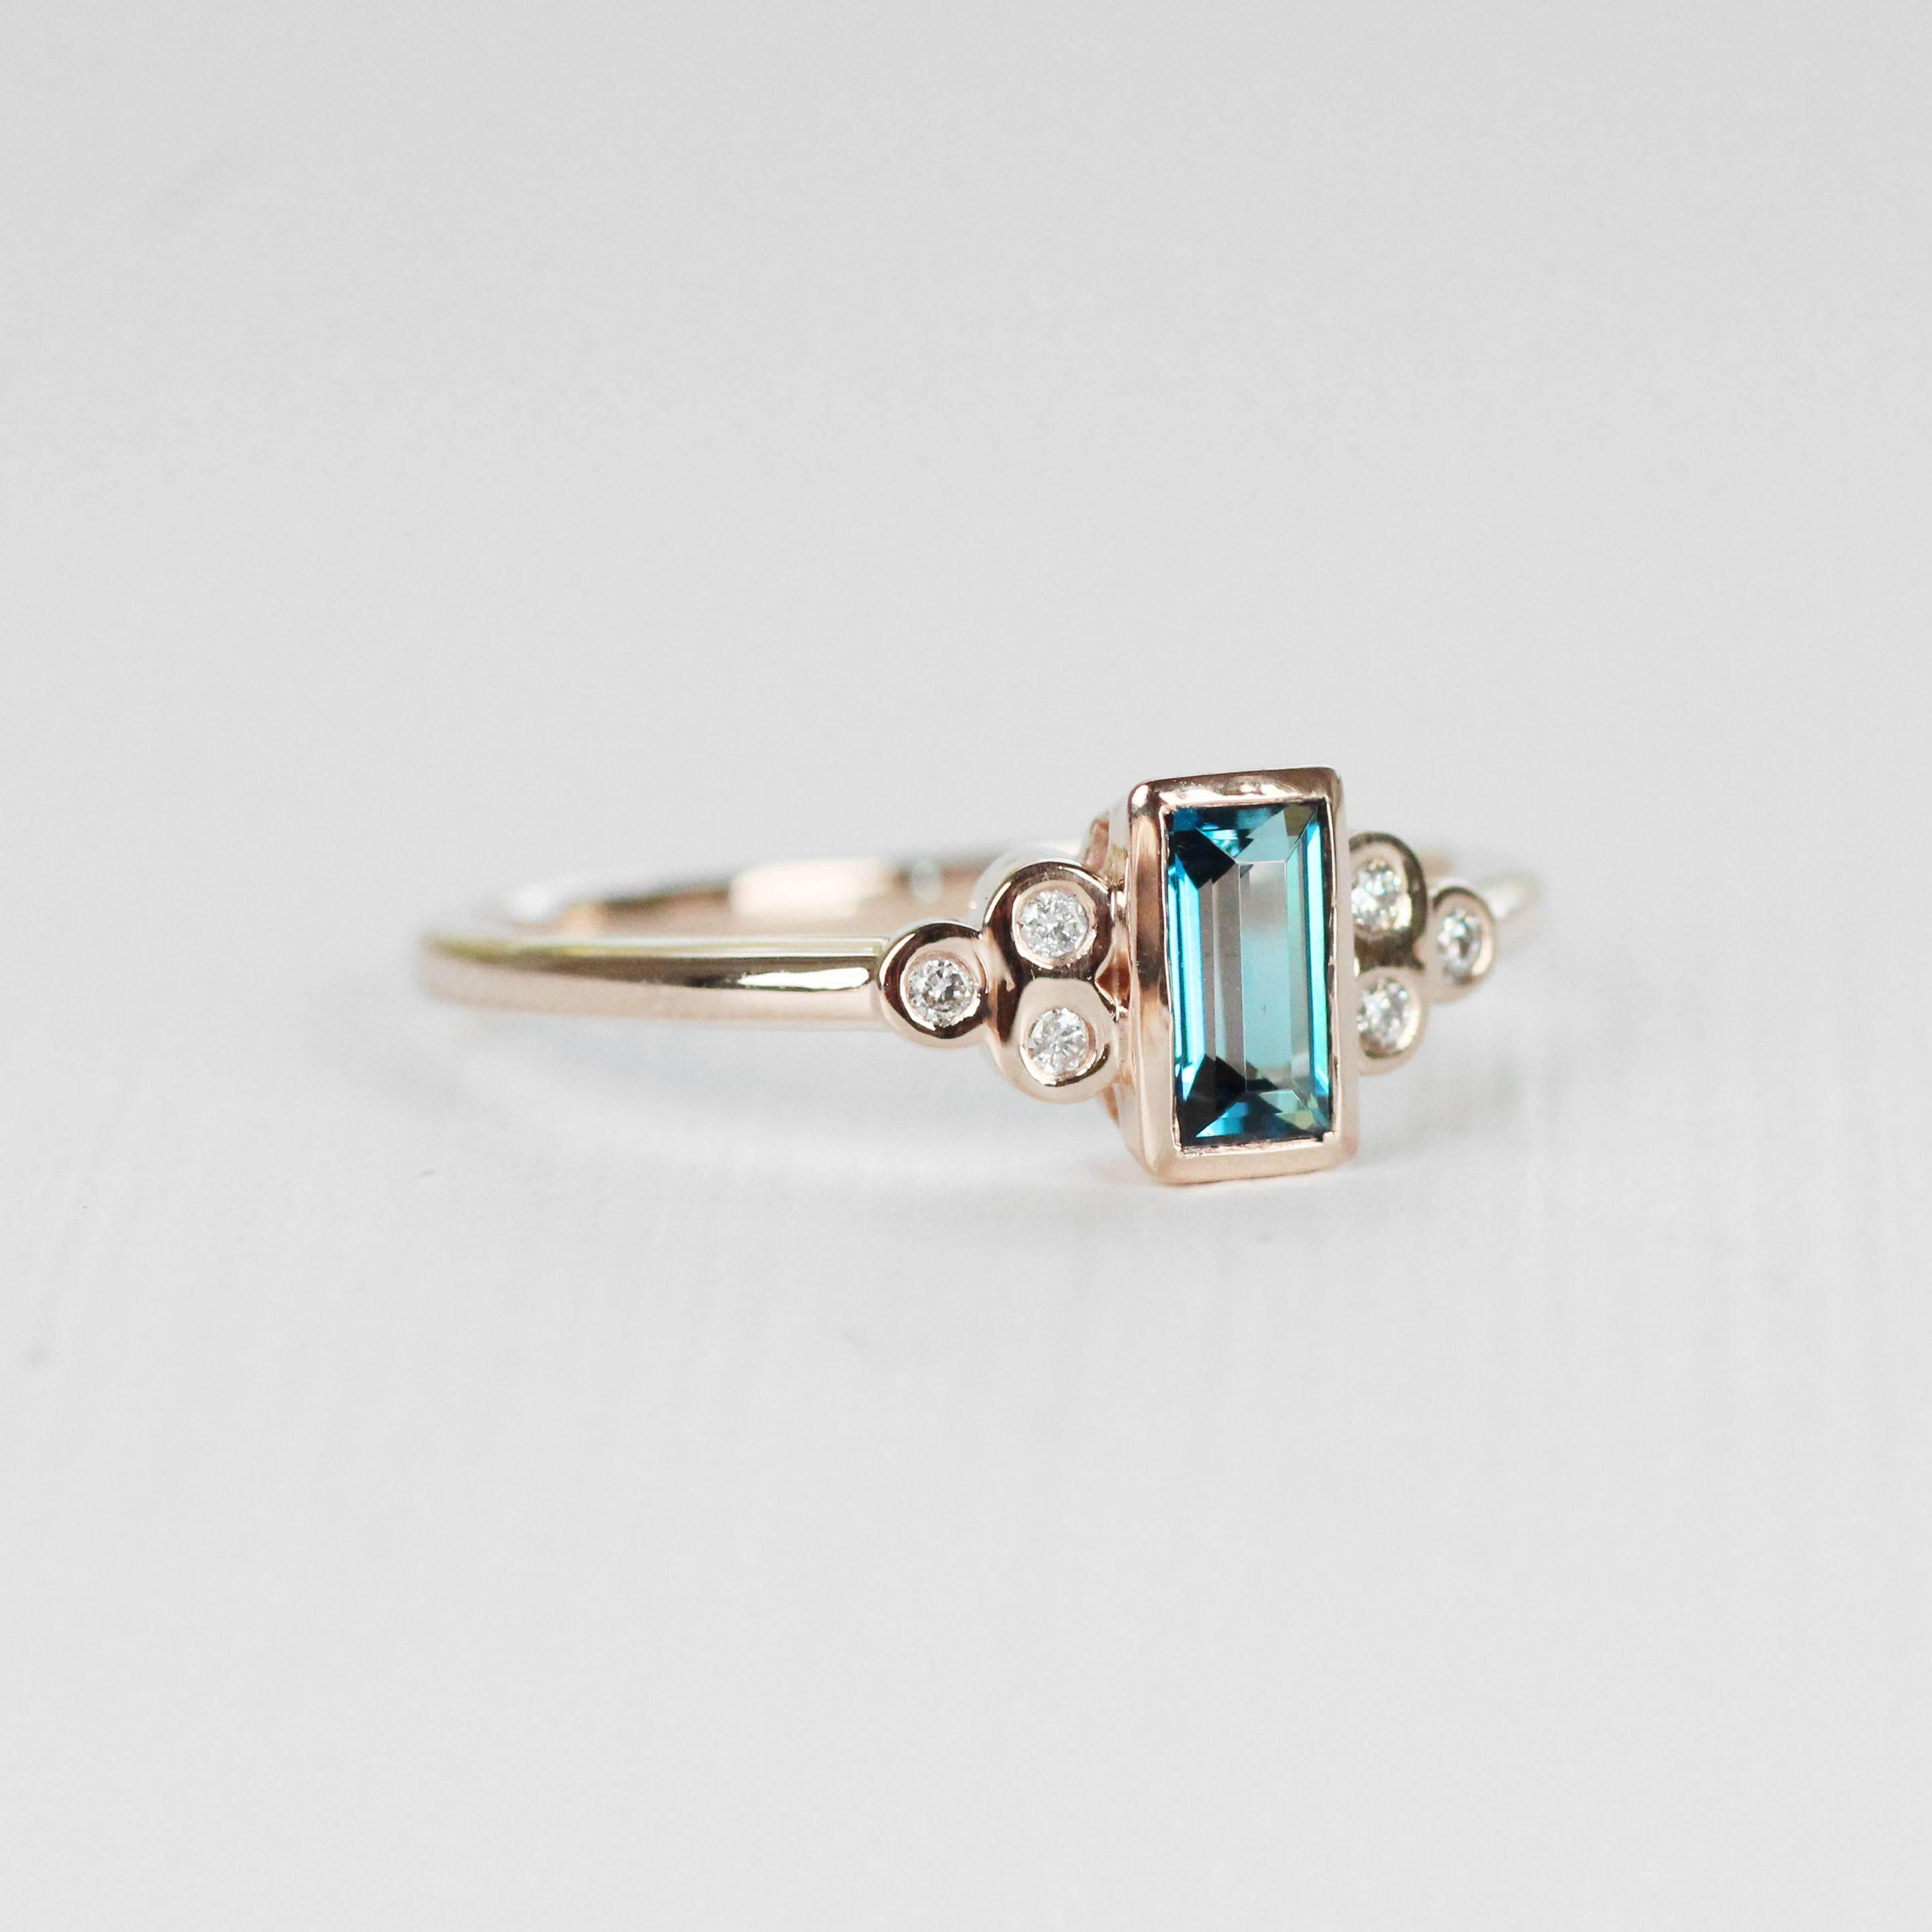 Sophia - London Blue Topaz in Rose Gold Ring - Made to order - Celestial Diamonds ® by Midwinter Co.